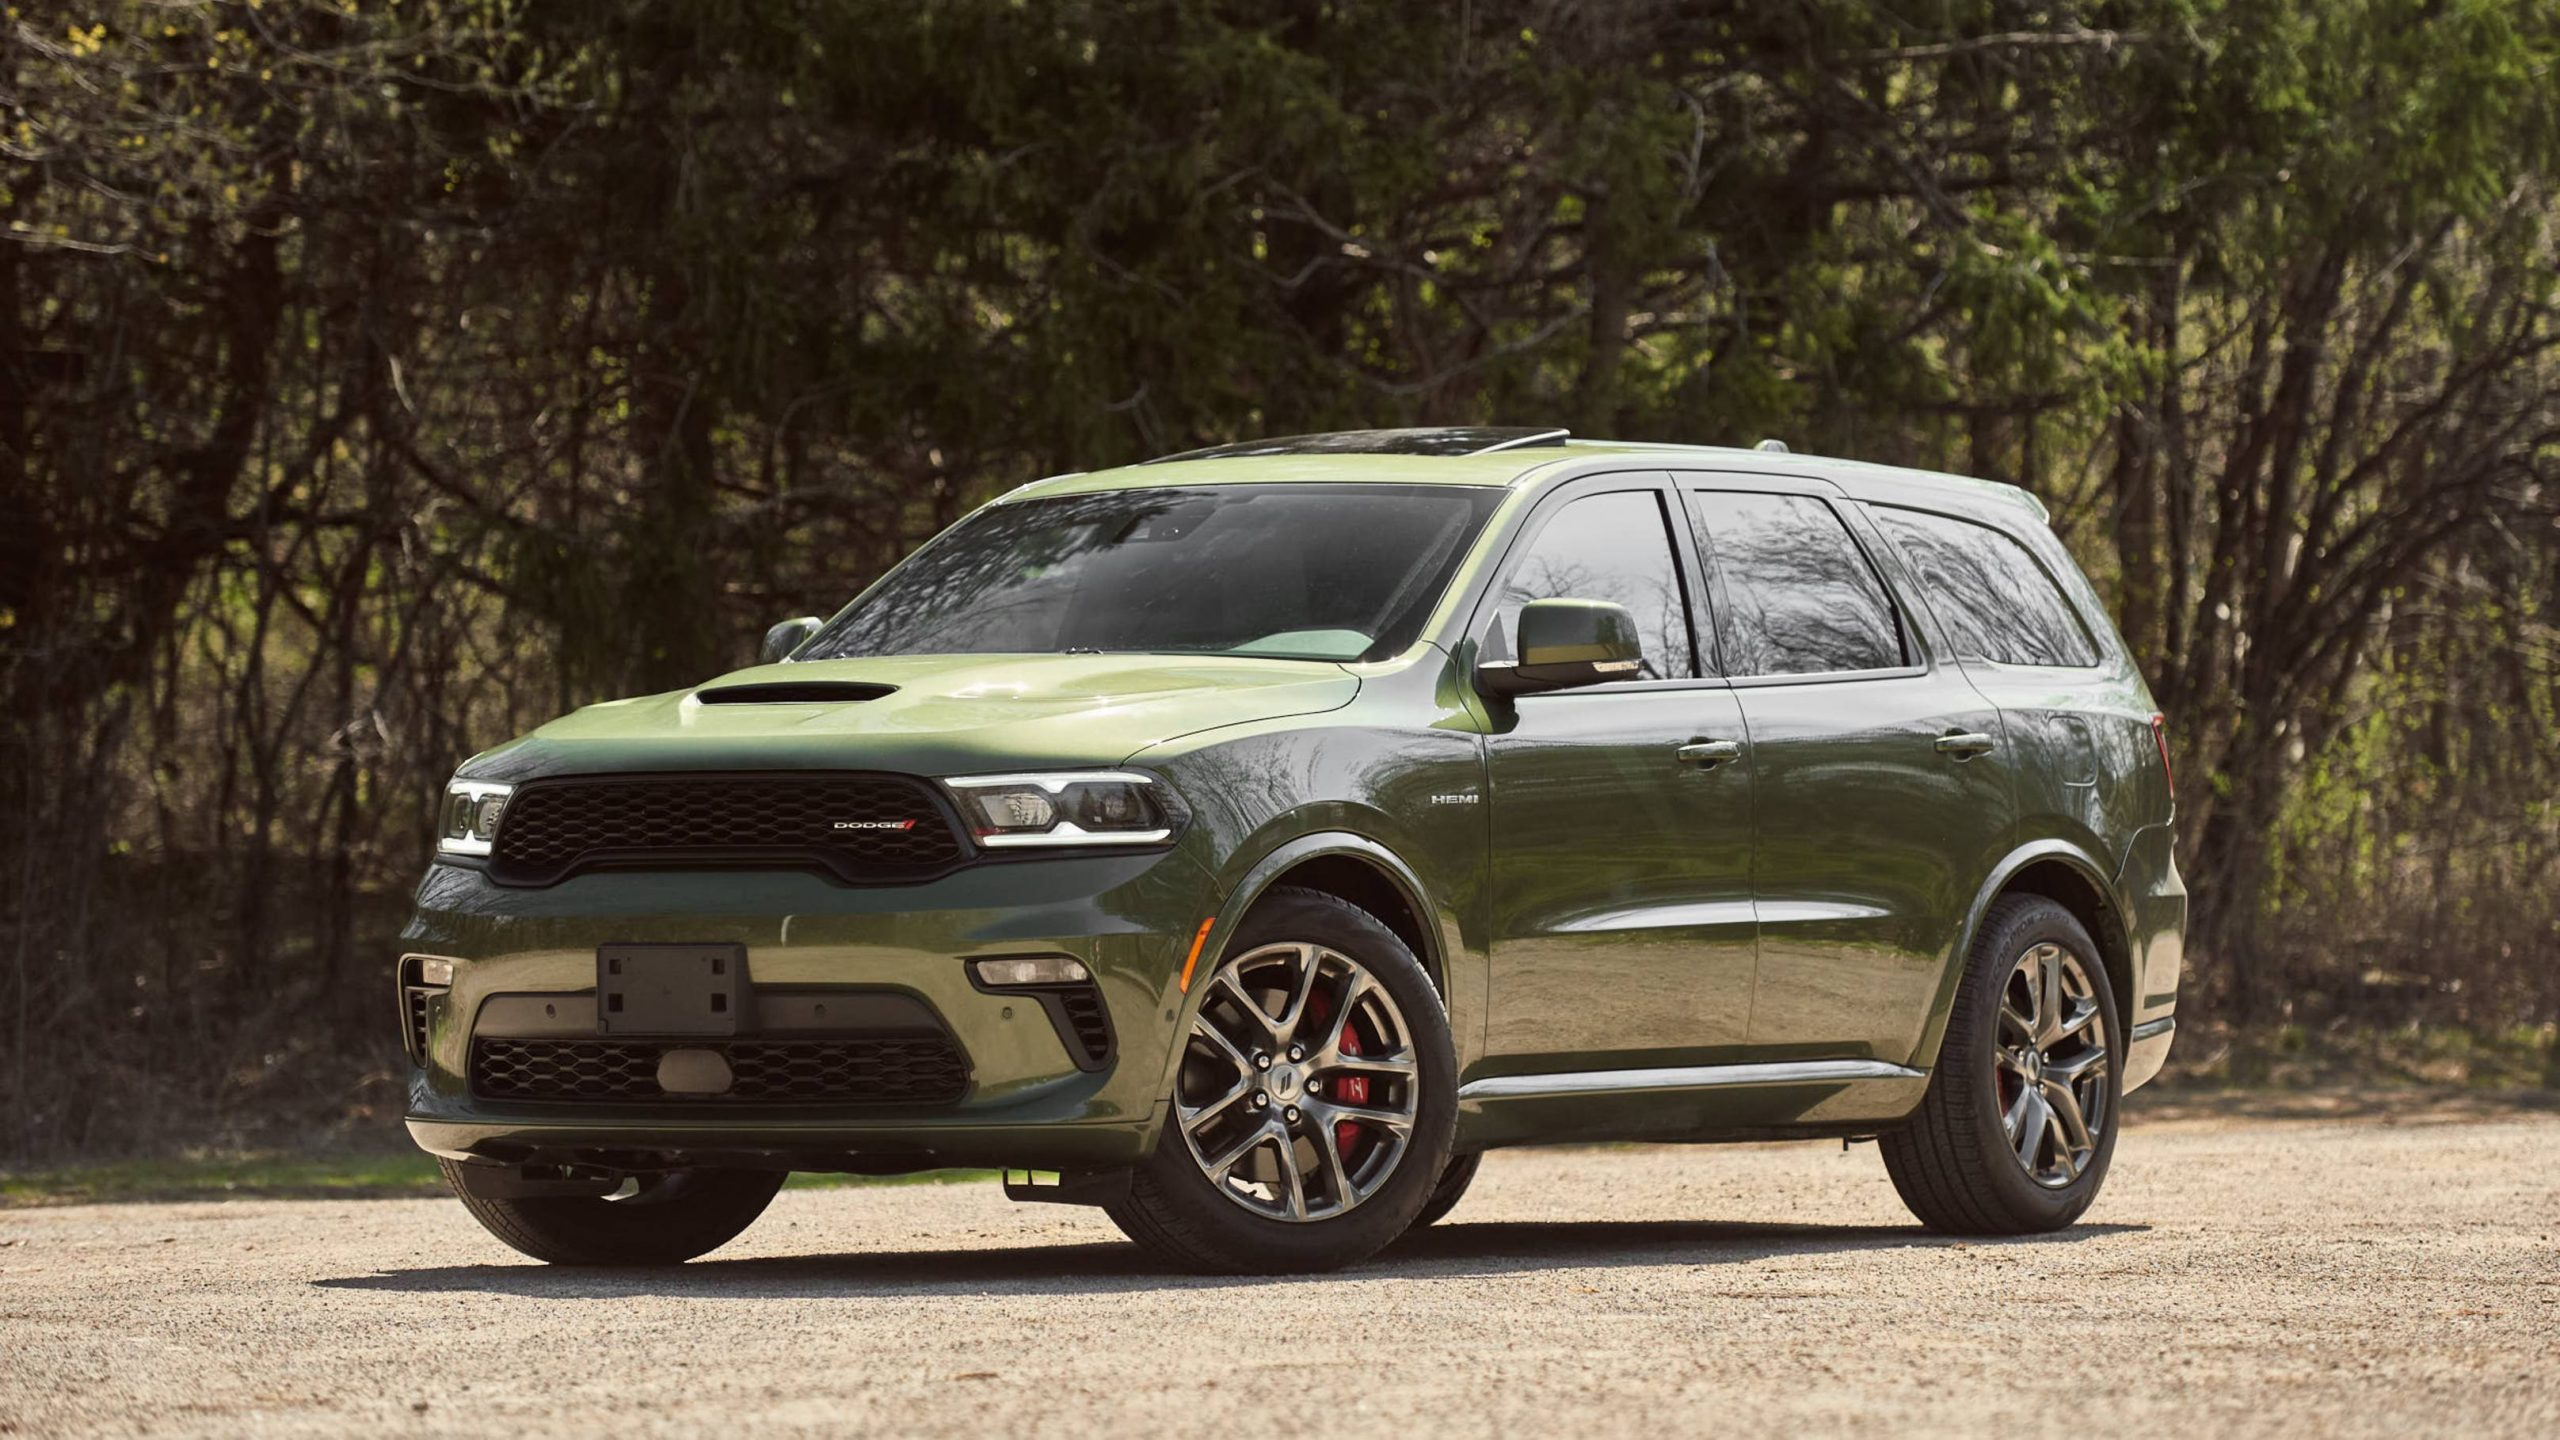 Review 2021 Dodge Durango R/T